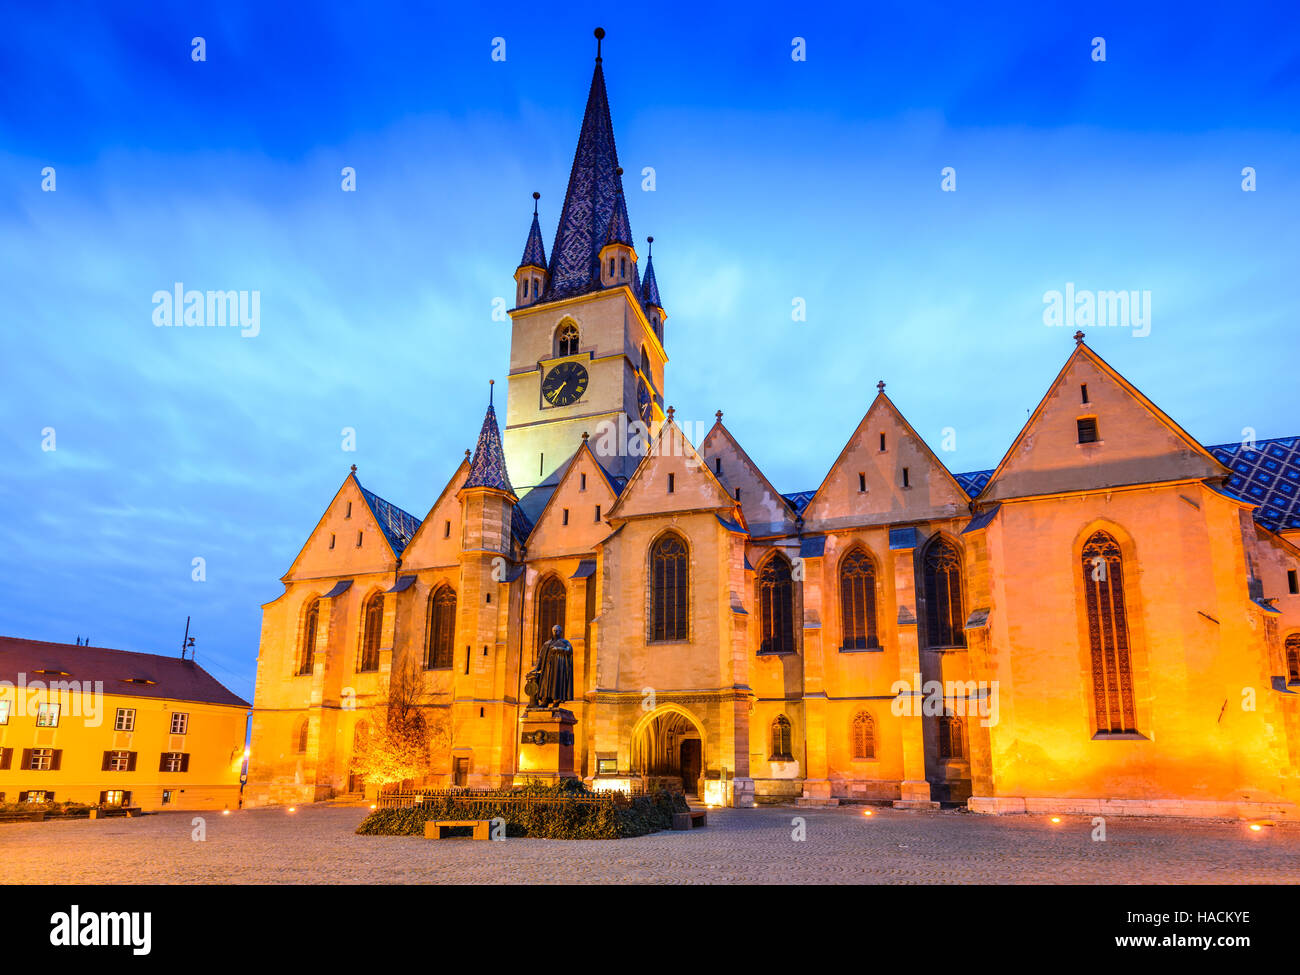 Sibiu, Romania. Evangelical Cathedral in the center of Sibiu, Transylvania, European Capital of Culture for the - Stock Image